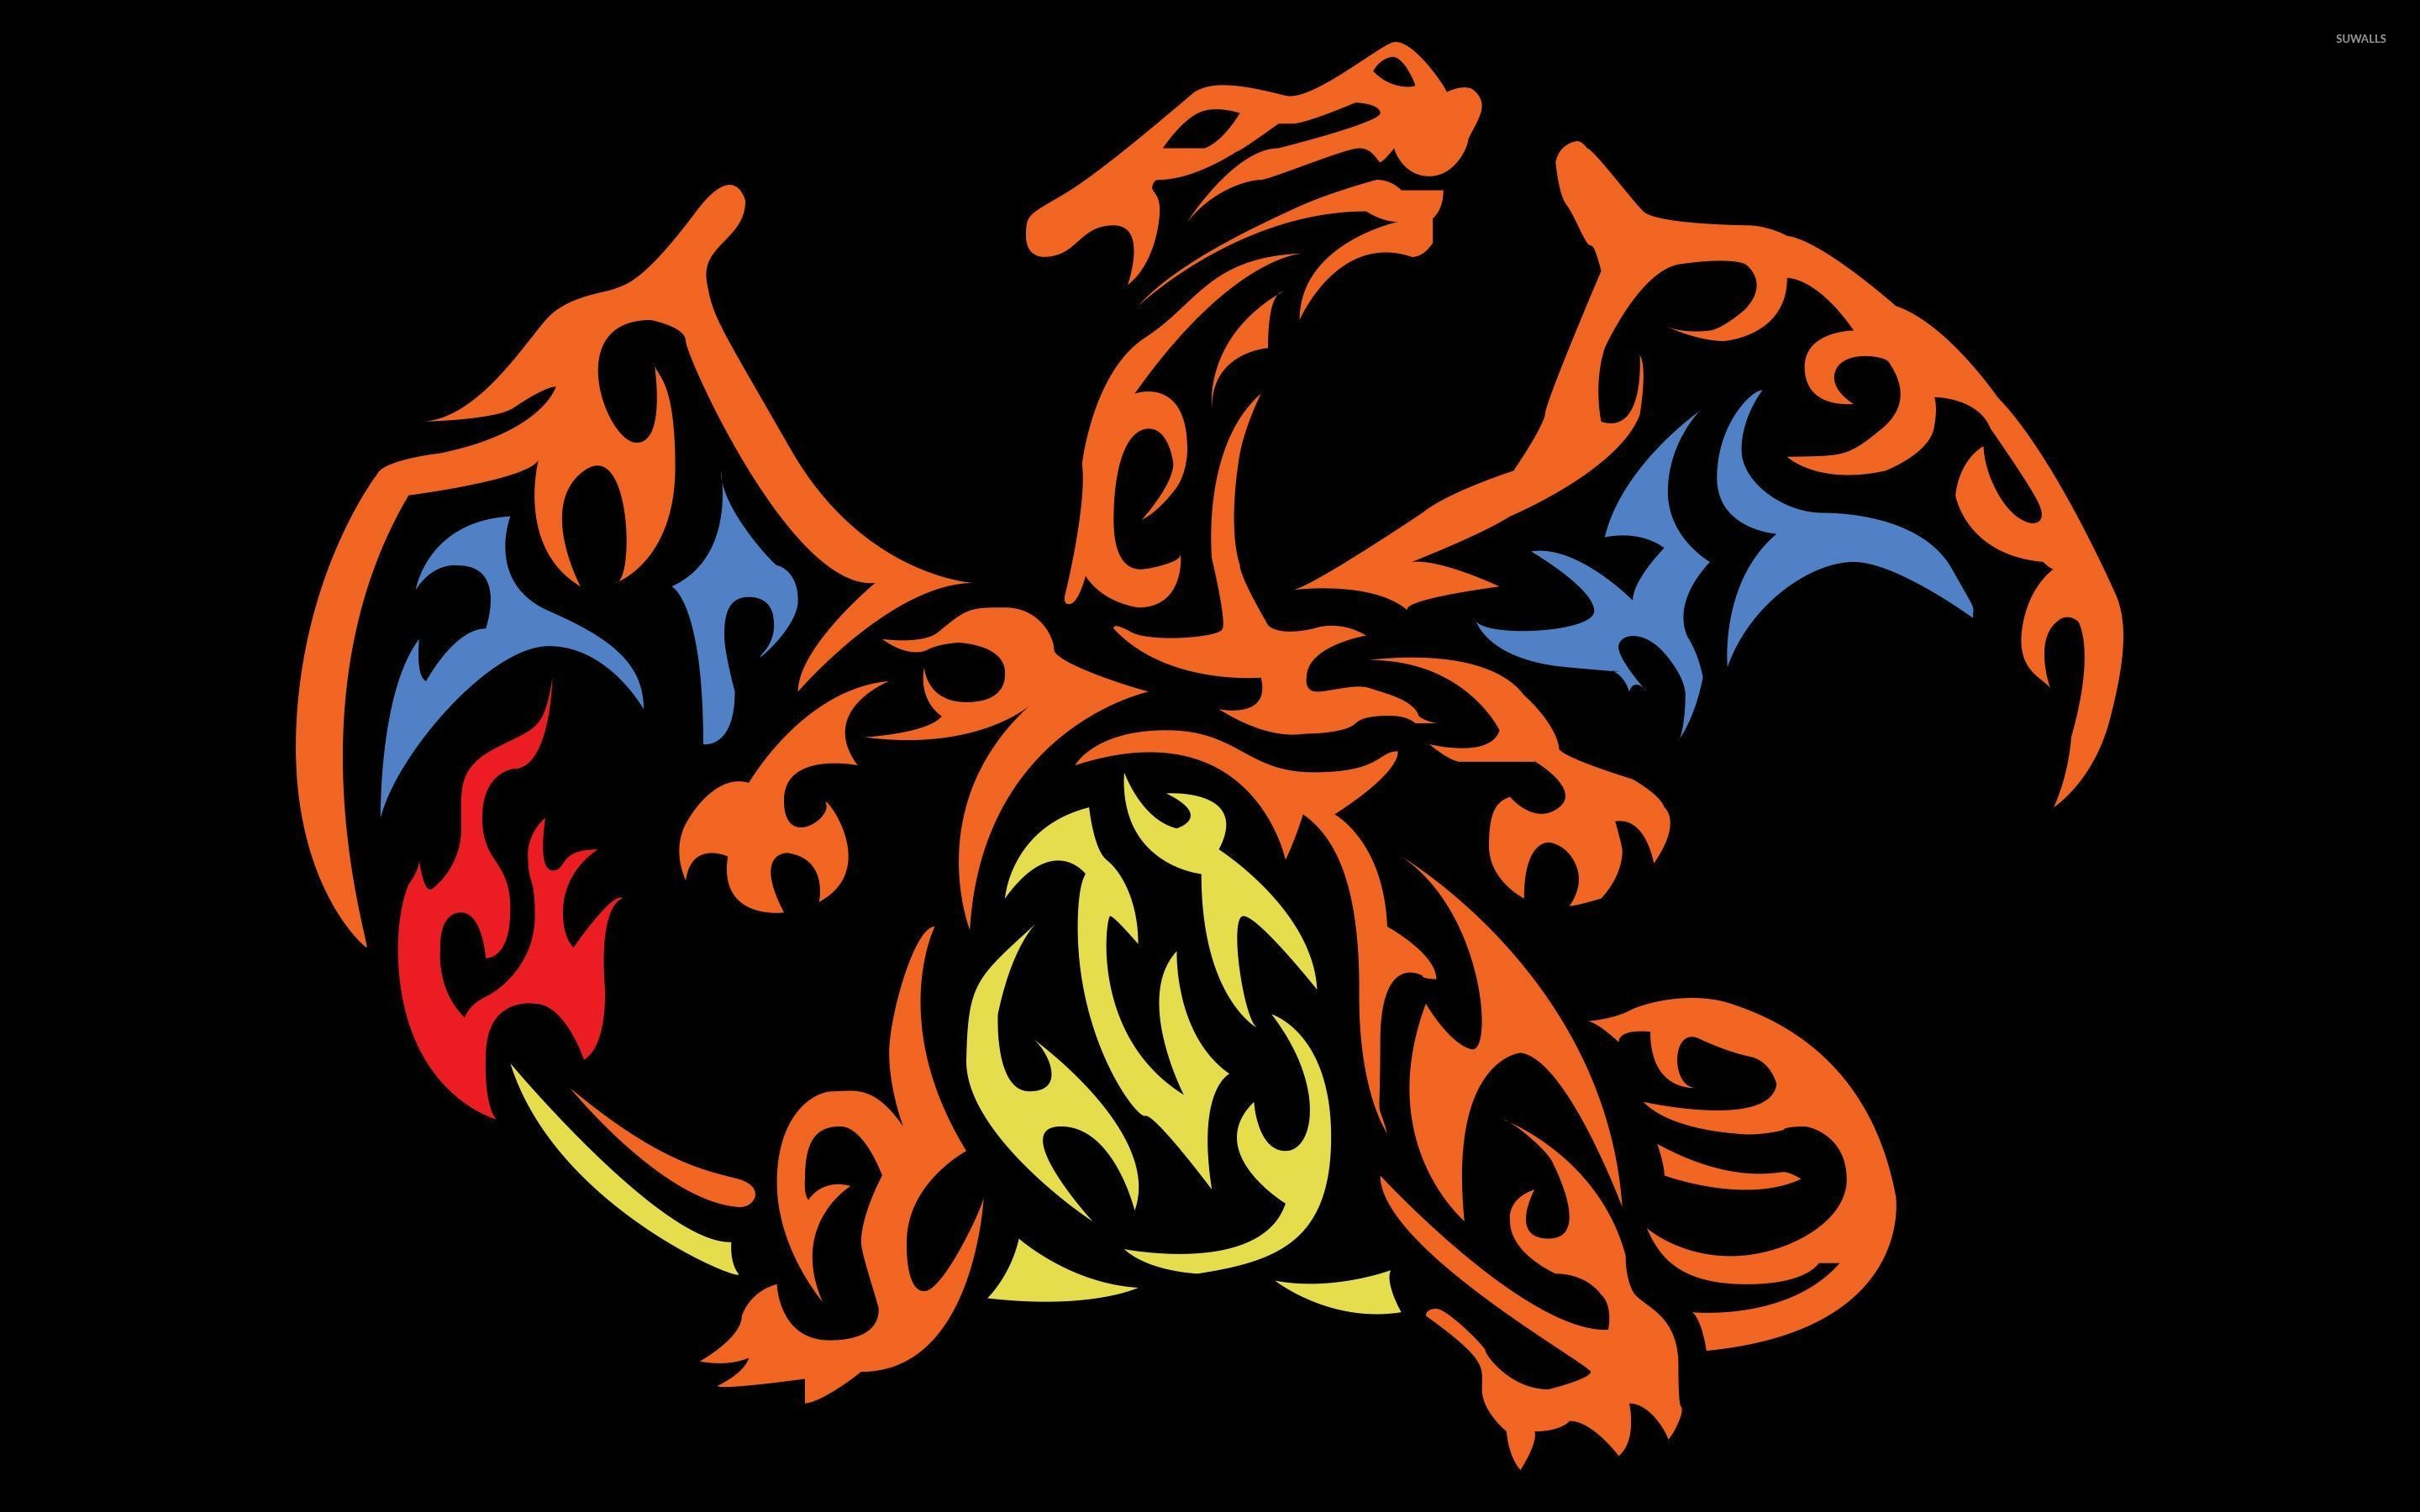 Wallpaper download pokemon - Tribal Charizard Pokemon Wallpaper